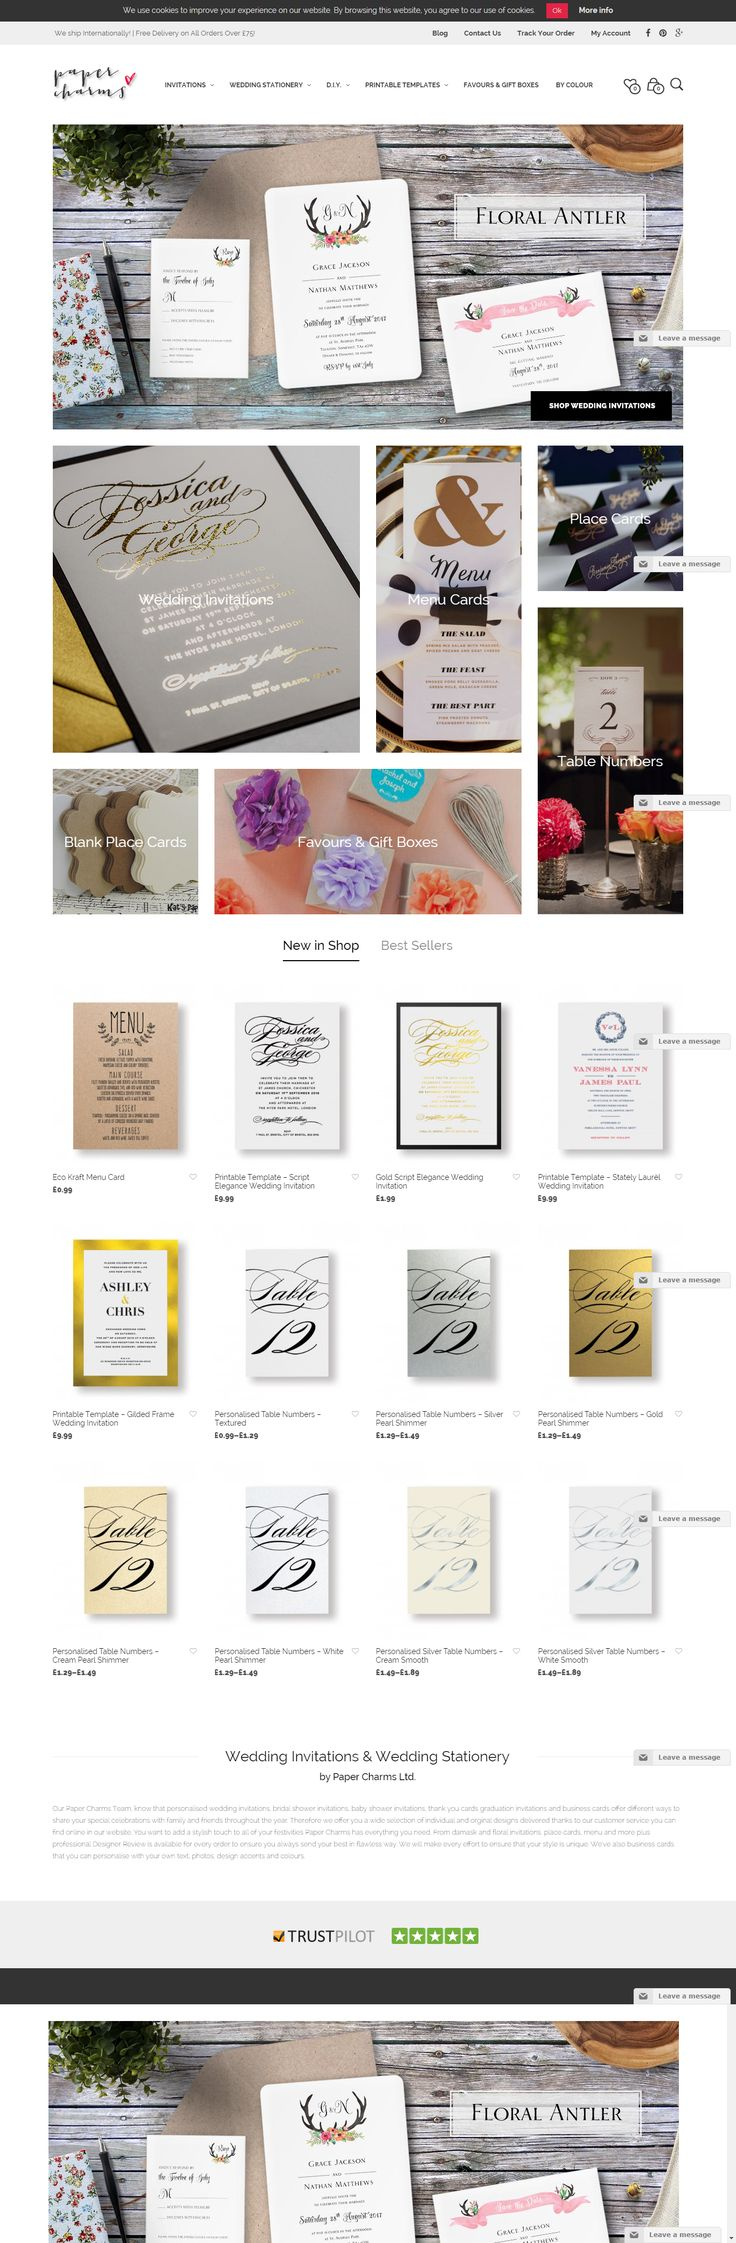 Paper Charms' website for wedding stationery, powered by Mr Tailor WordPress theme.  http://themeforest.net/item/mr-tailor-responsive-woocommerce-theme/7292110?&utm_source=pinterest.com&utm_medium=social&utm_content=paper-charms&utm_campaign=showcase #wedding #stationery #wpsites #wordpress #design